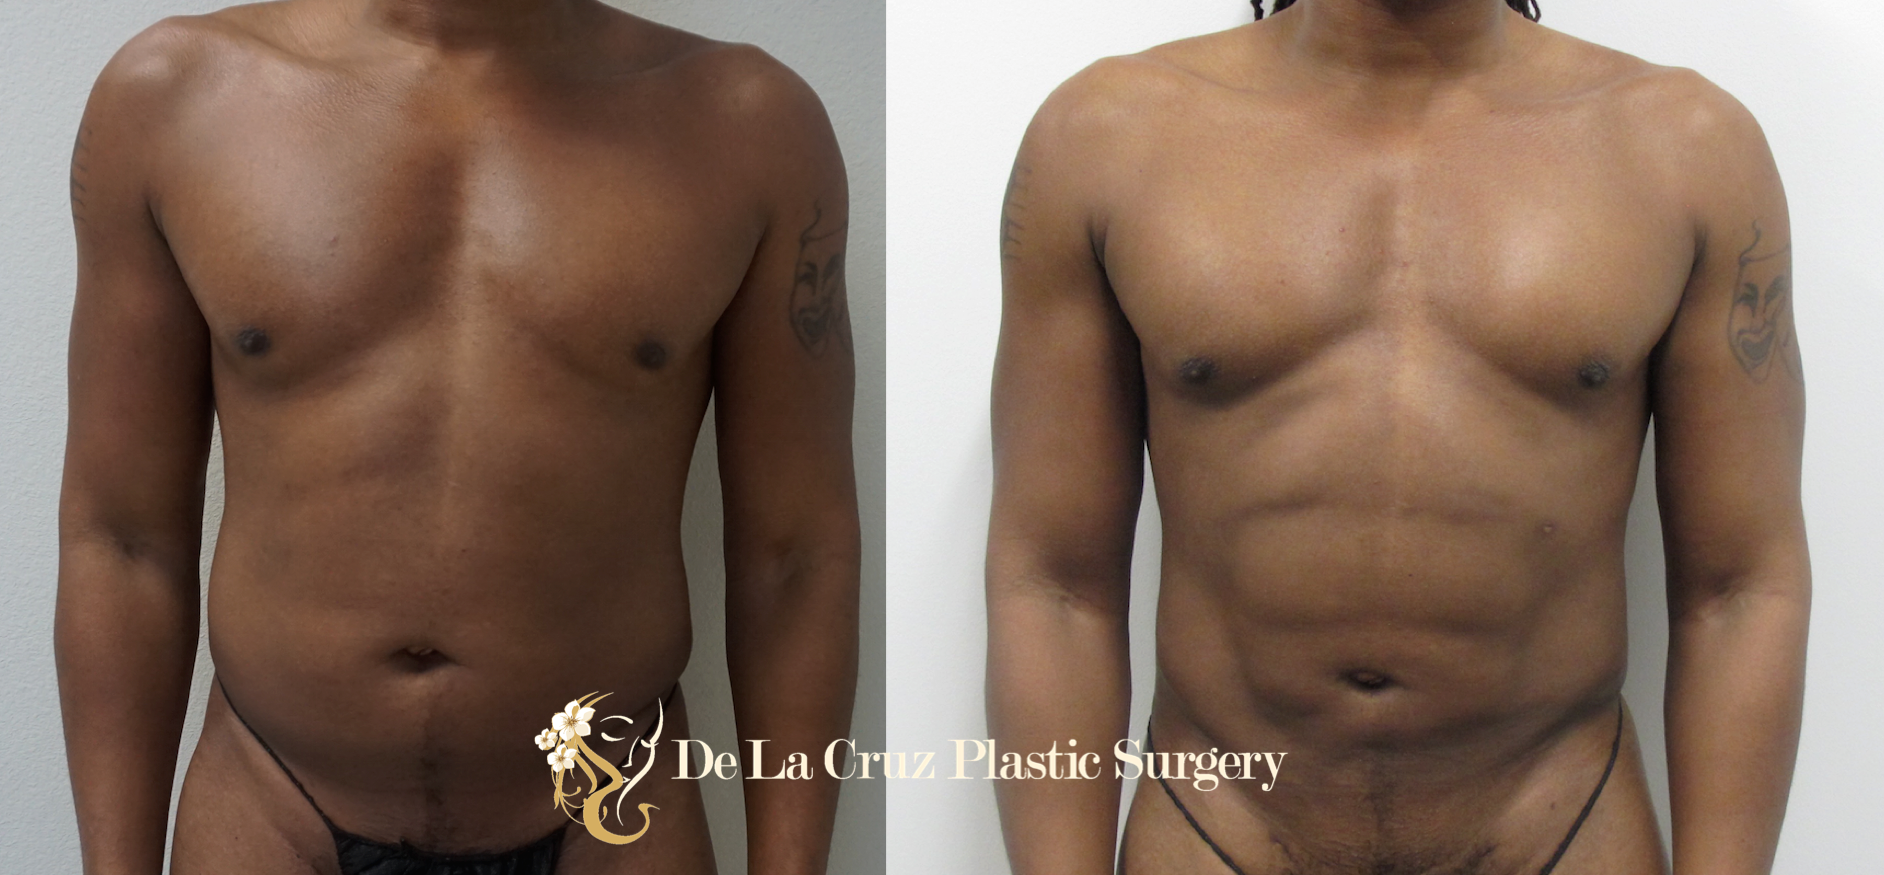 Before & After Photos of 4D VASER High-Definition  Liposuction  of the arms, abdomen/flanks/back (6 weeks after surgery) performed by Houston  Plastic Surgeon  Emmanuel De La Cruz MD, PLLC